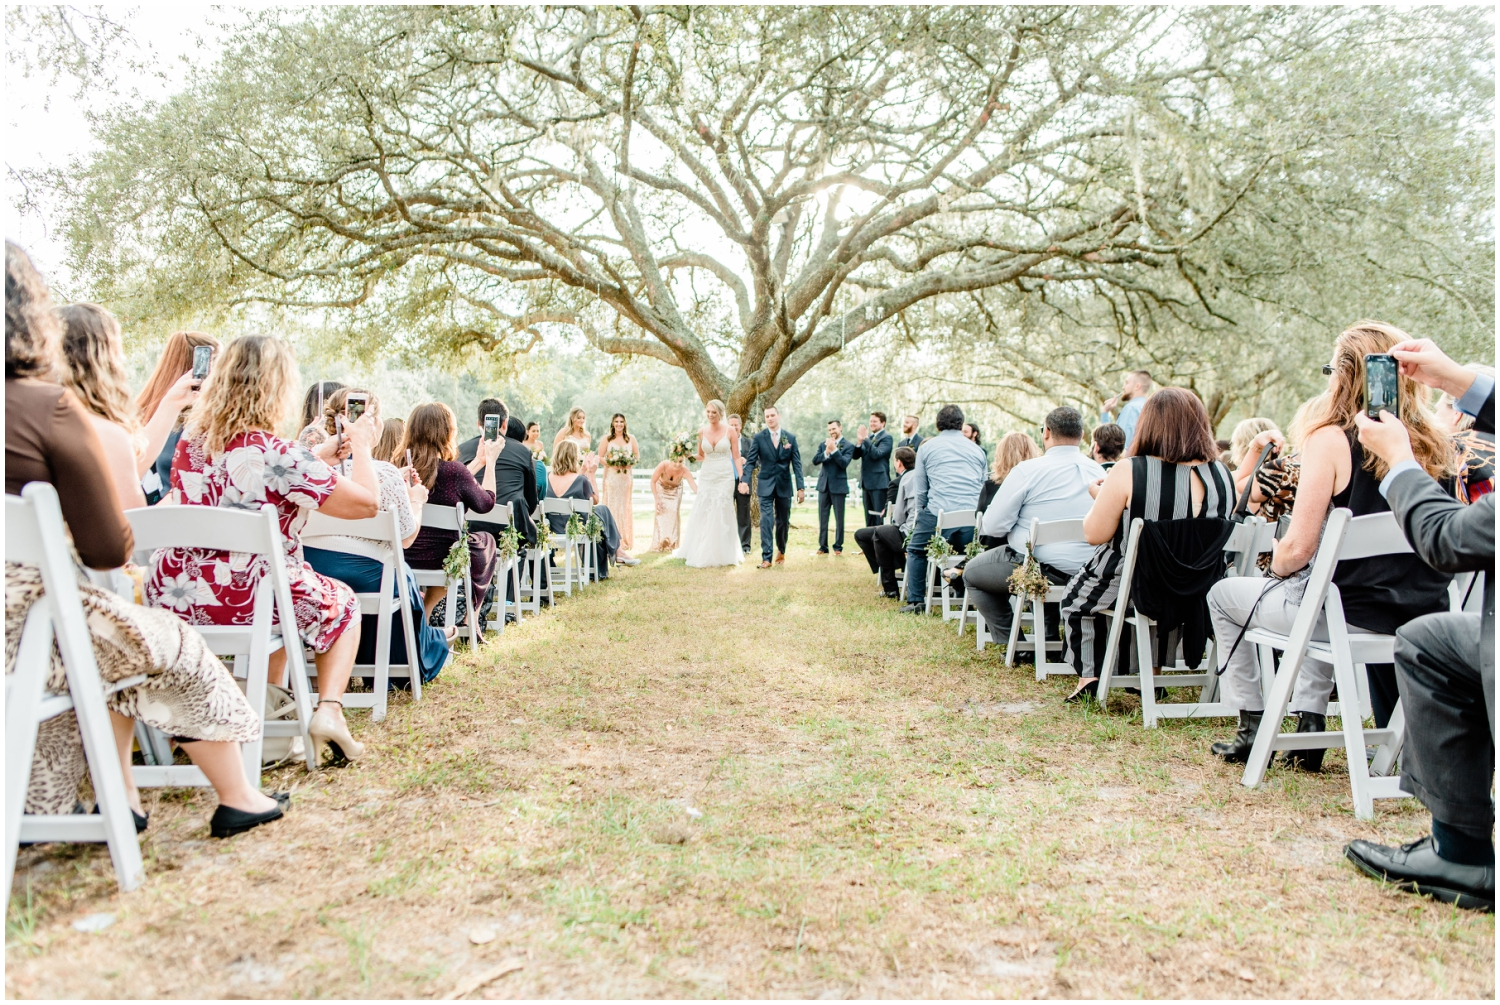 Outdoor wedding ceremony at The Lange Farm